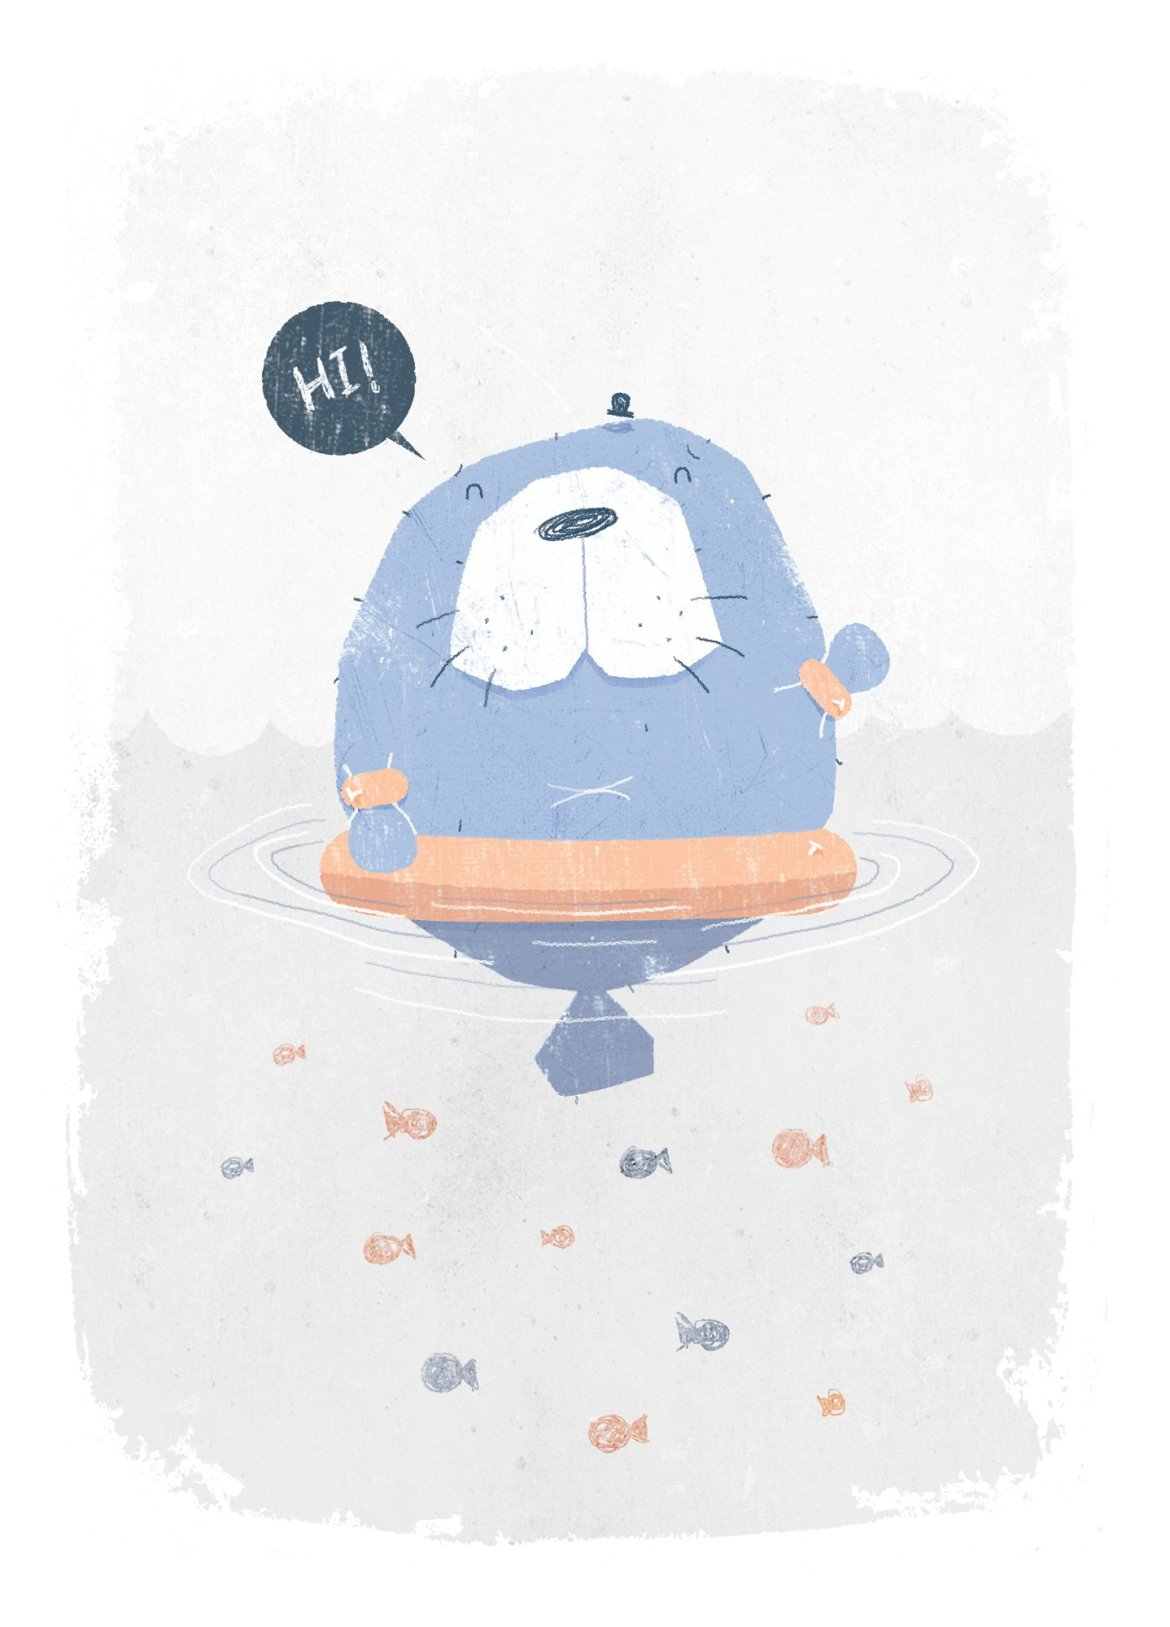 Cute Manatee Illustration -7-smaller